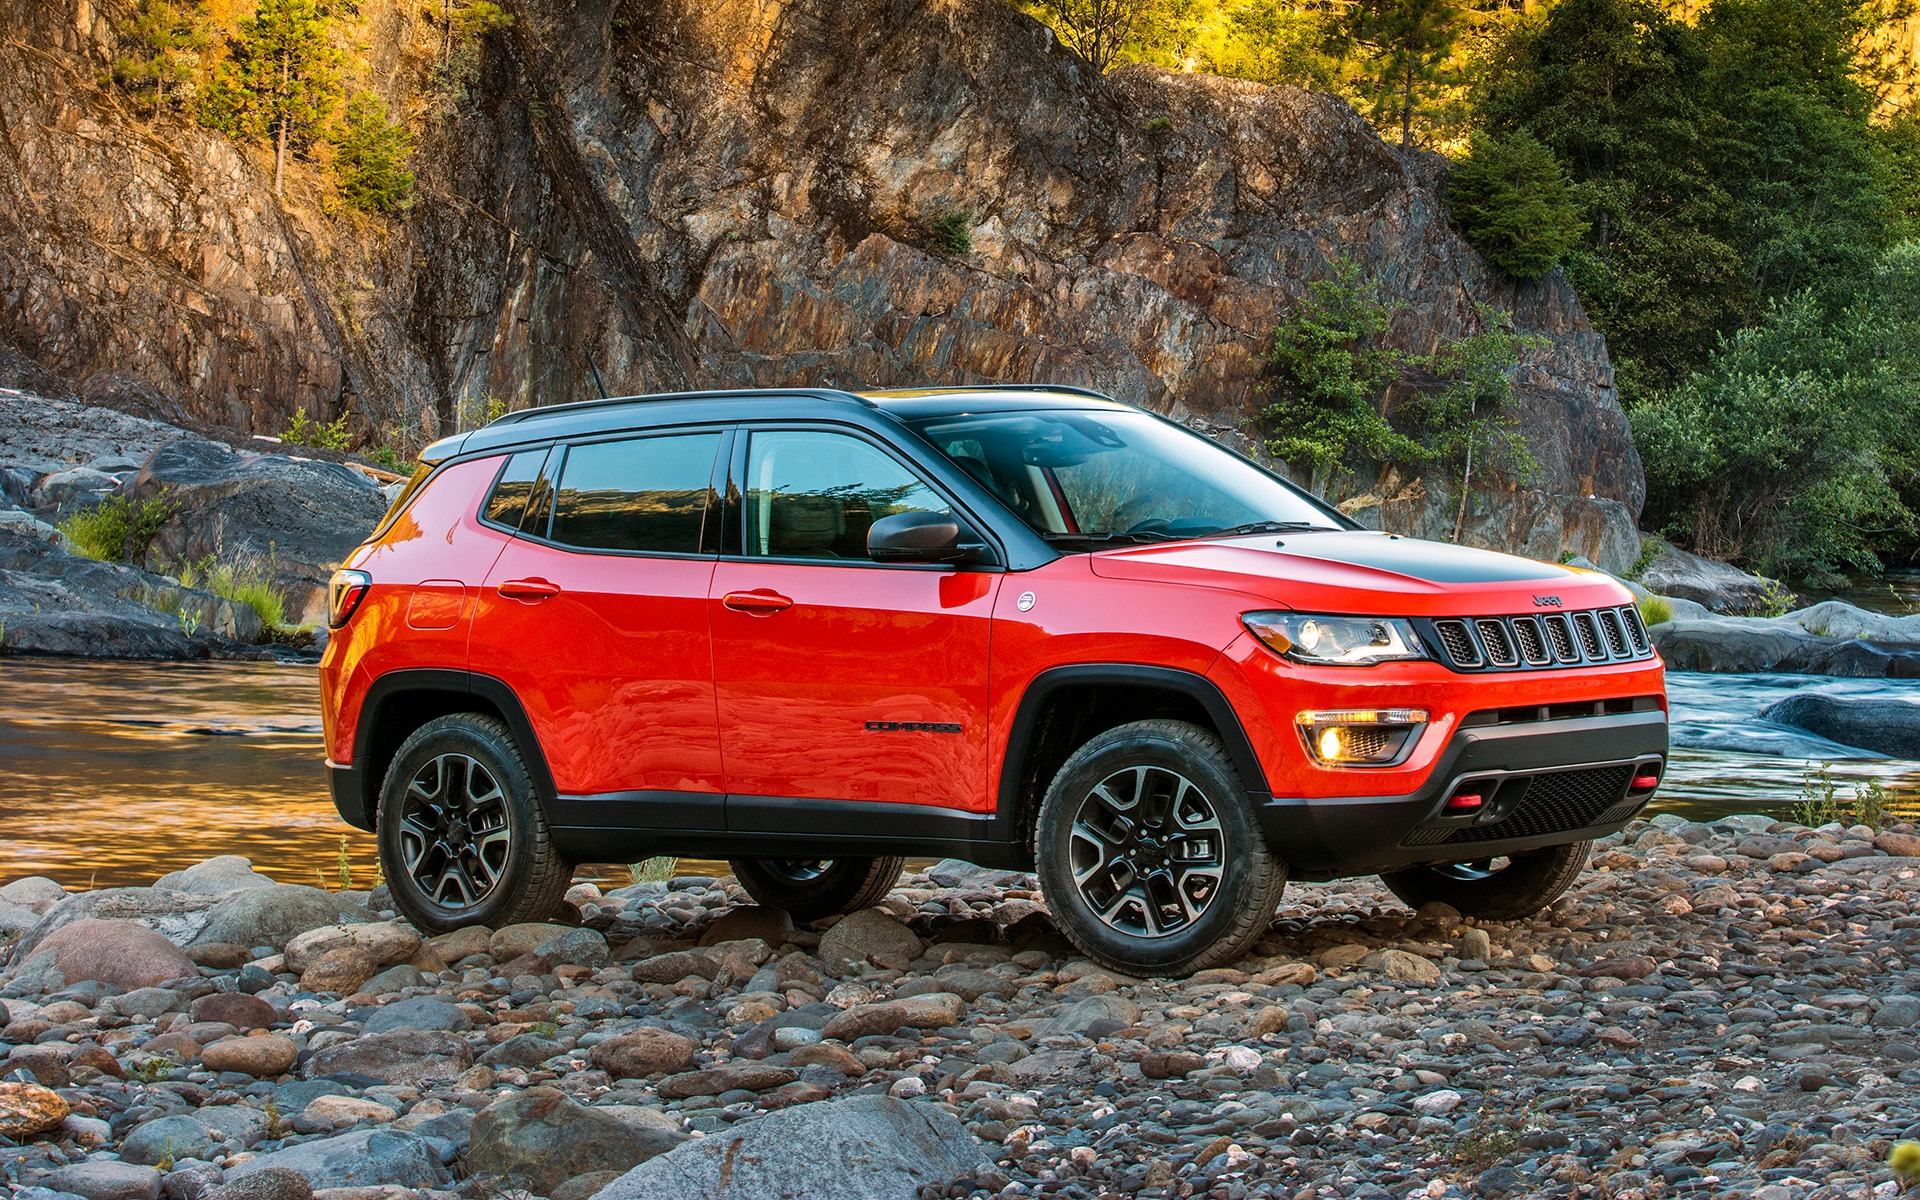 2018 Jeep Compass News Reviews Picture Galleries And Videos The Car Guide